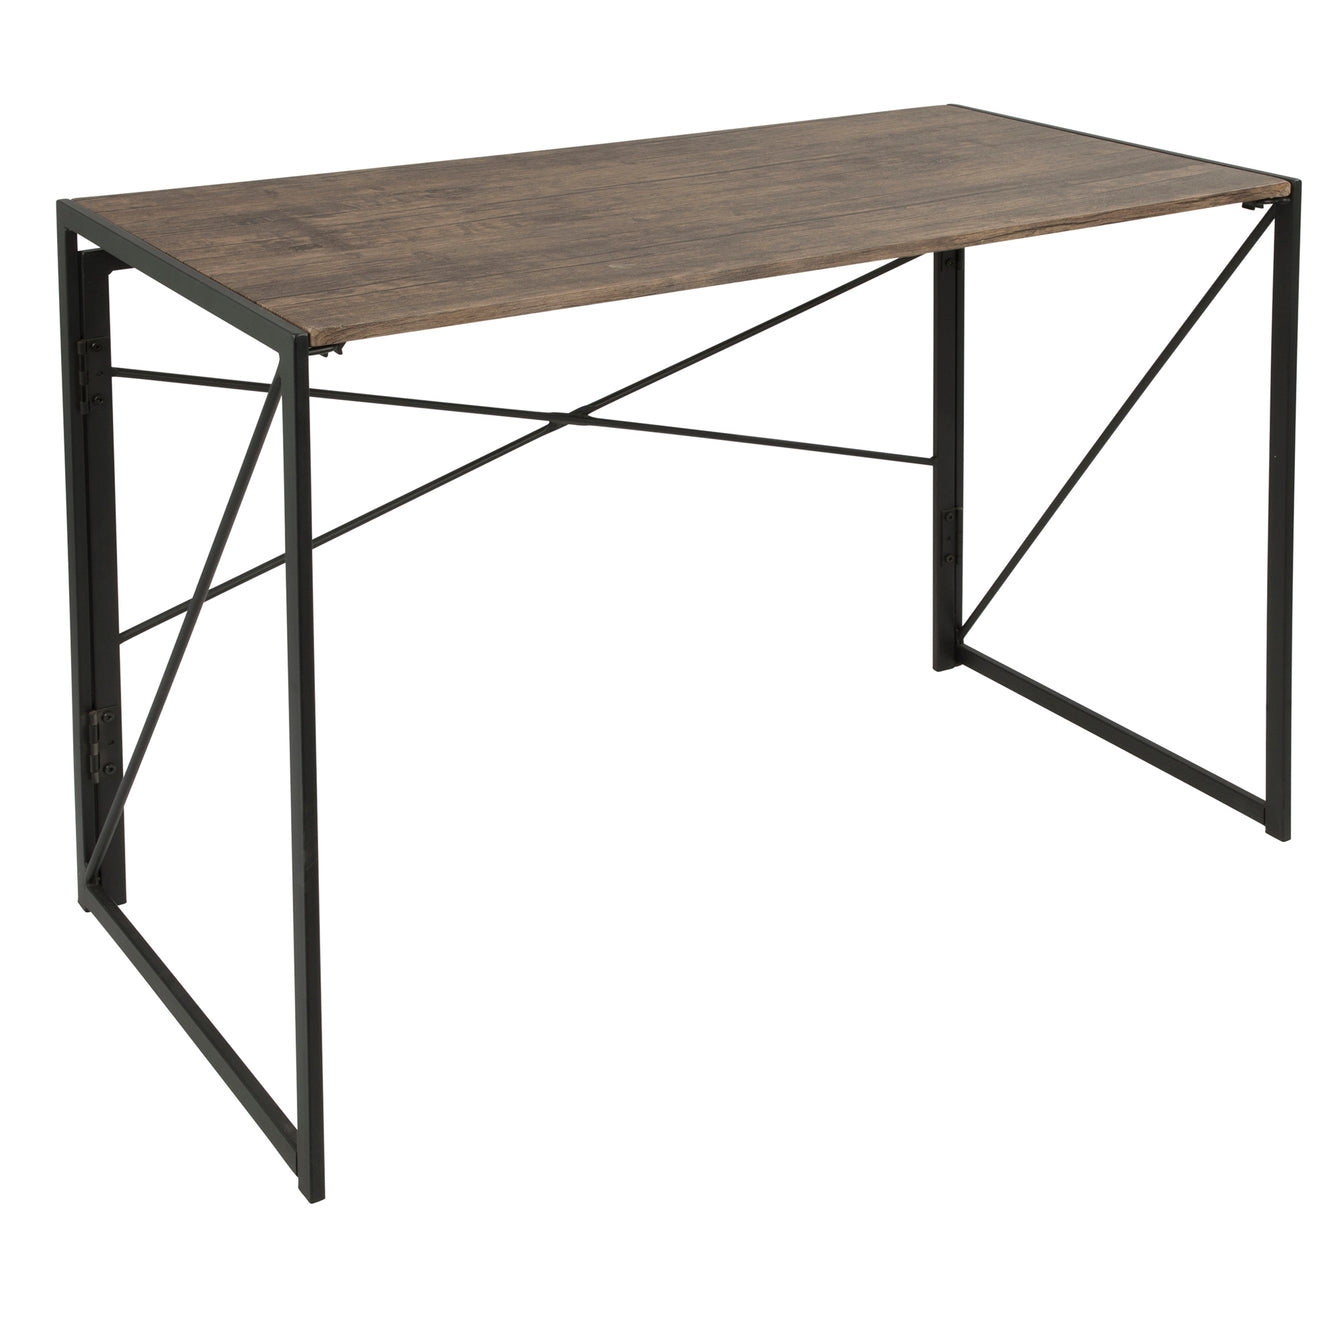 Dakota Industrial Office Desk in Black with Wood Top-LUMISOURCE-Peccadilly